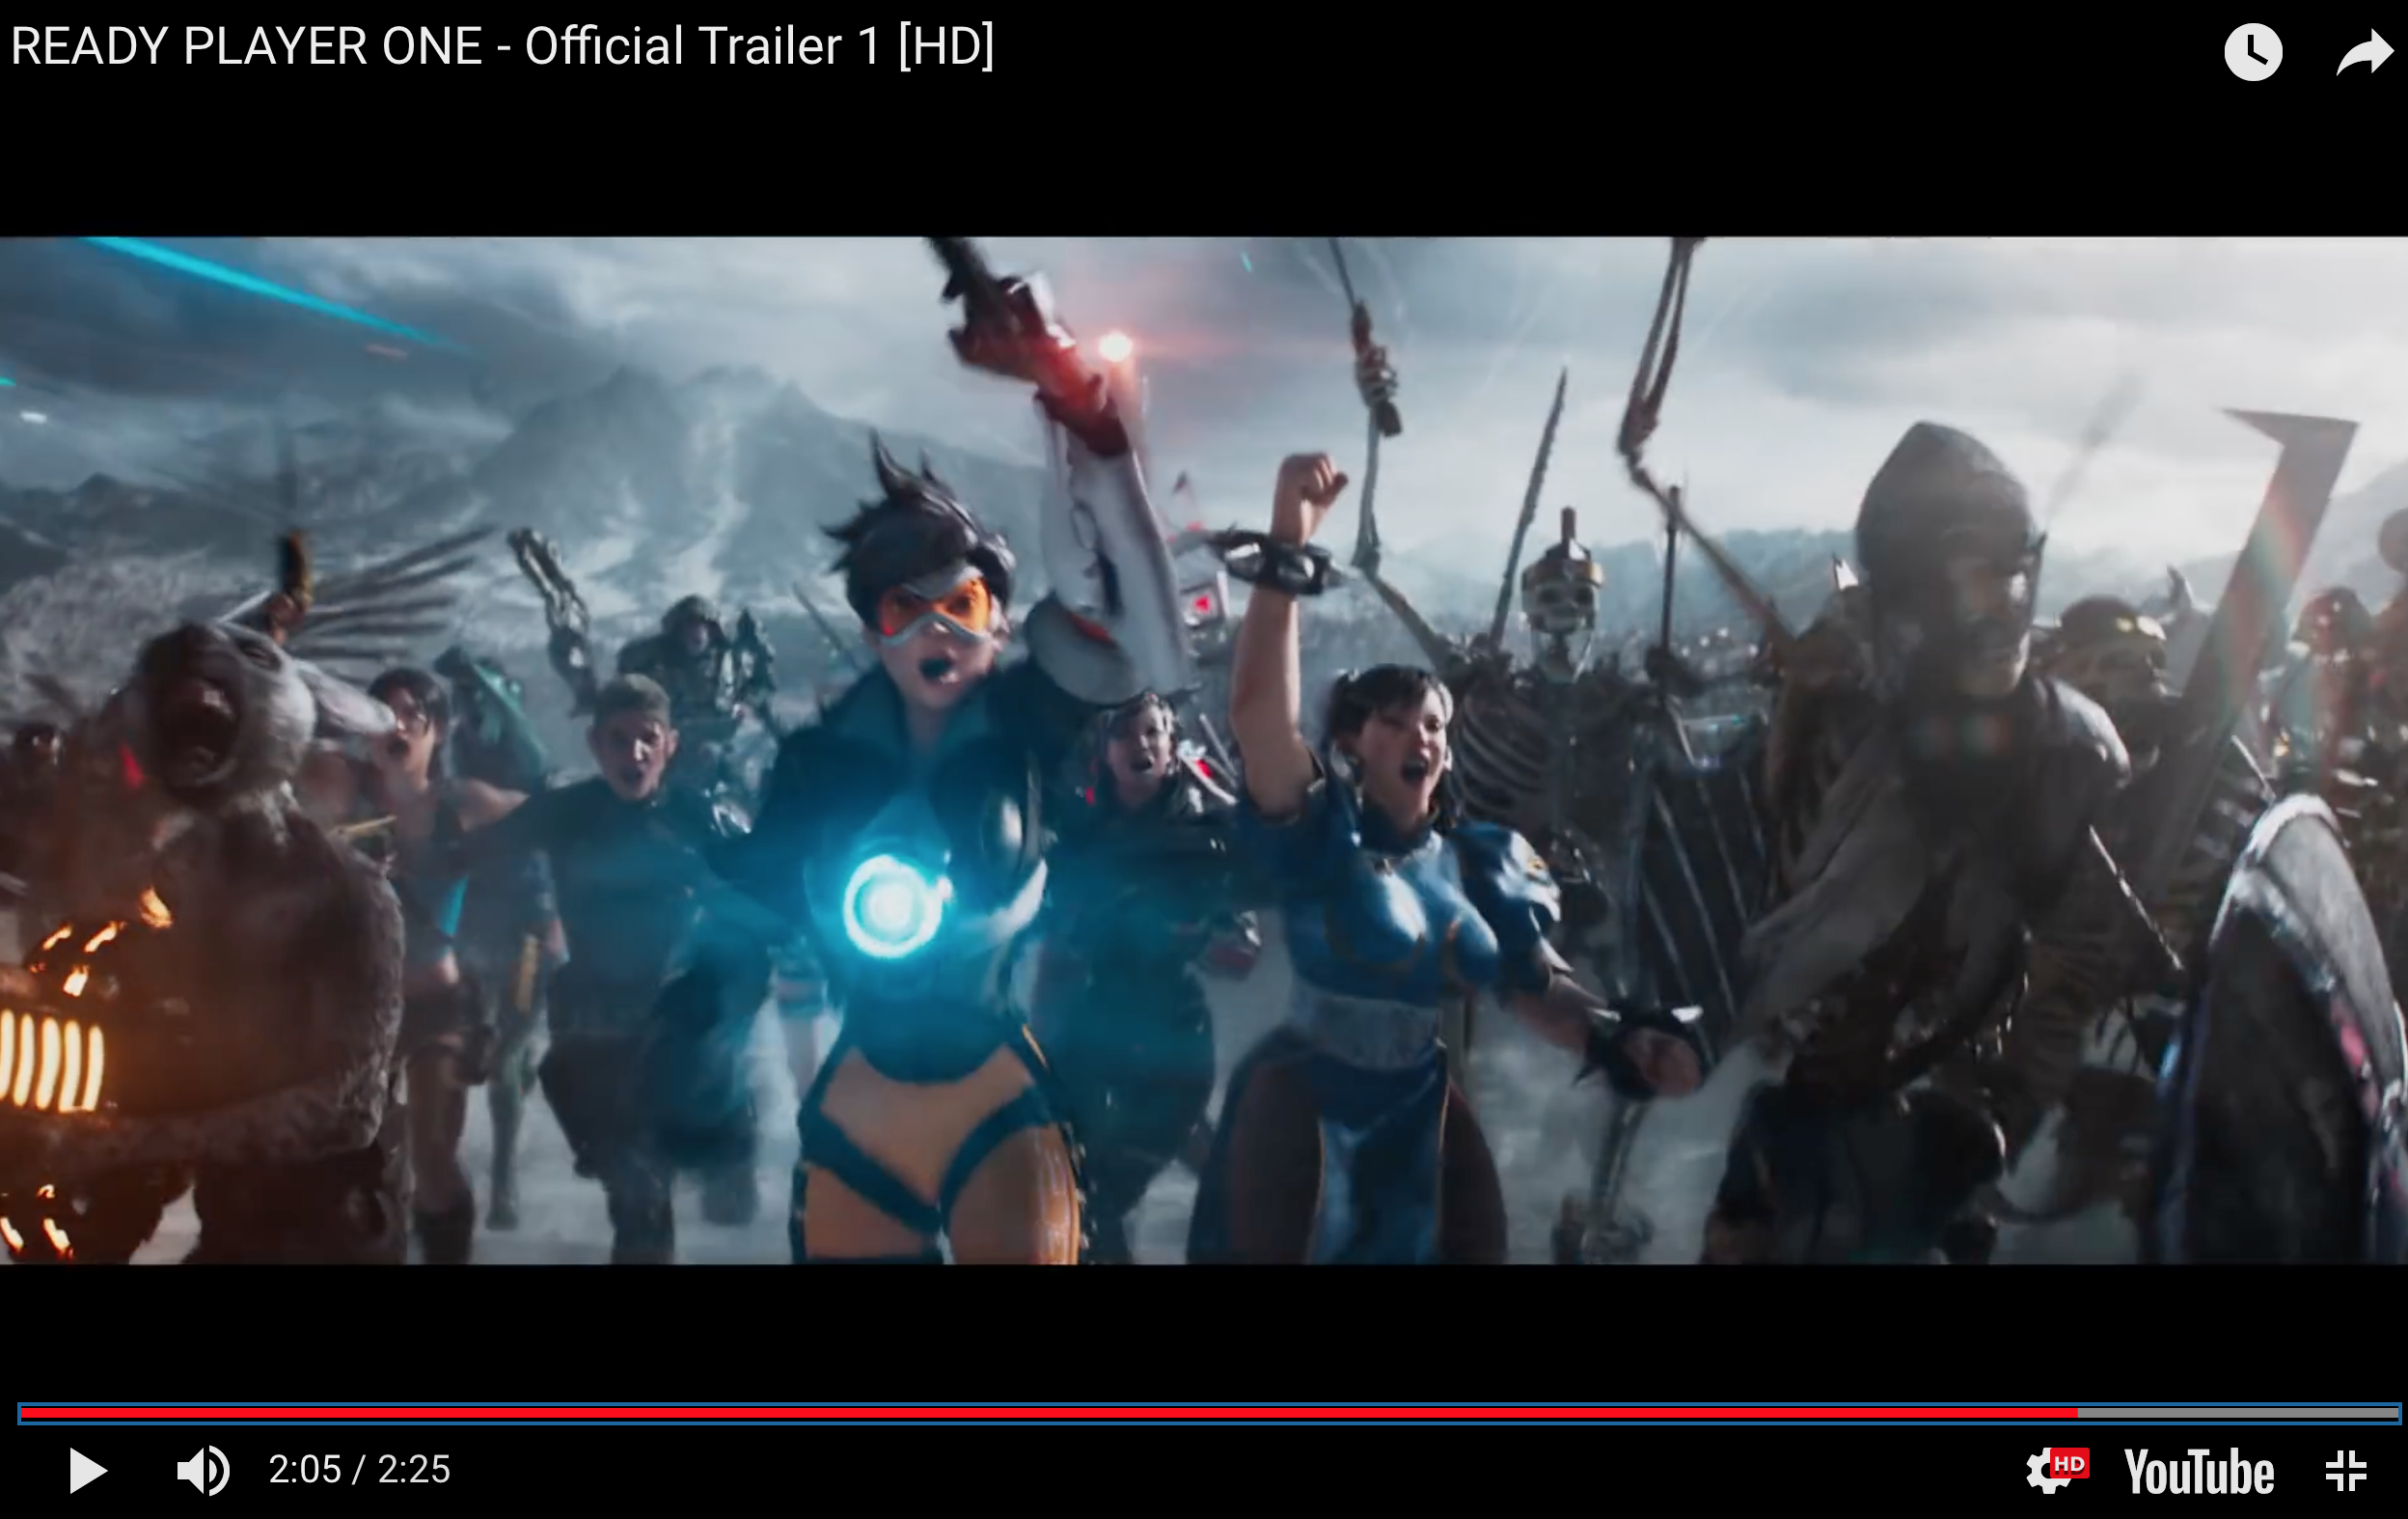 Anime Characters In Ready Player One : Tracer from overwatch in the new quot ready player one